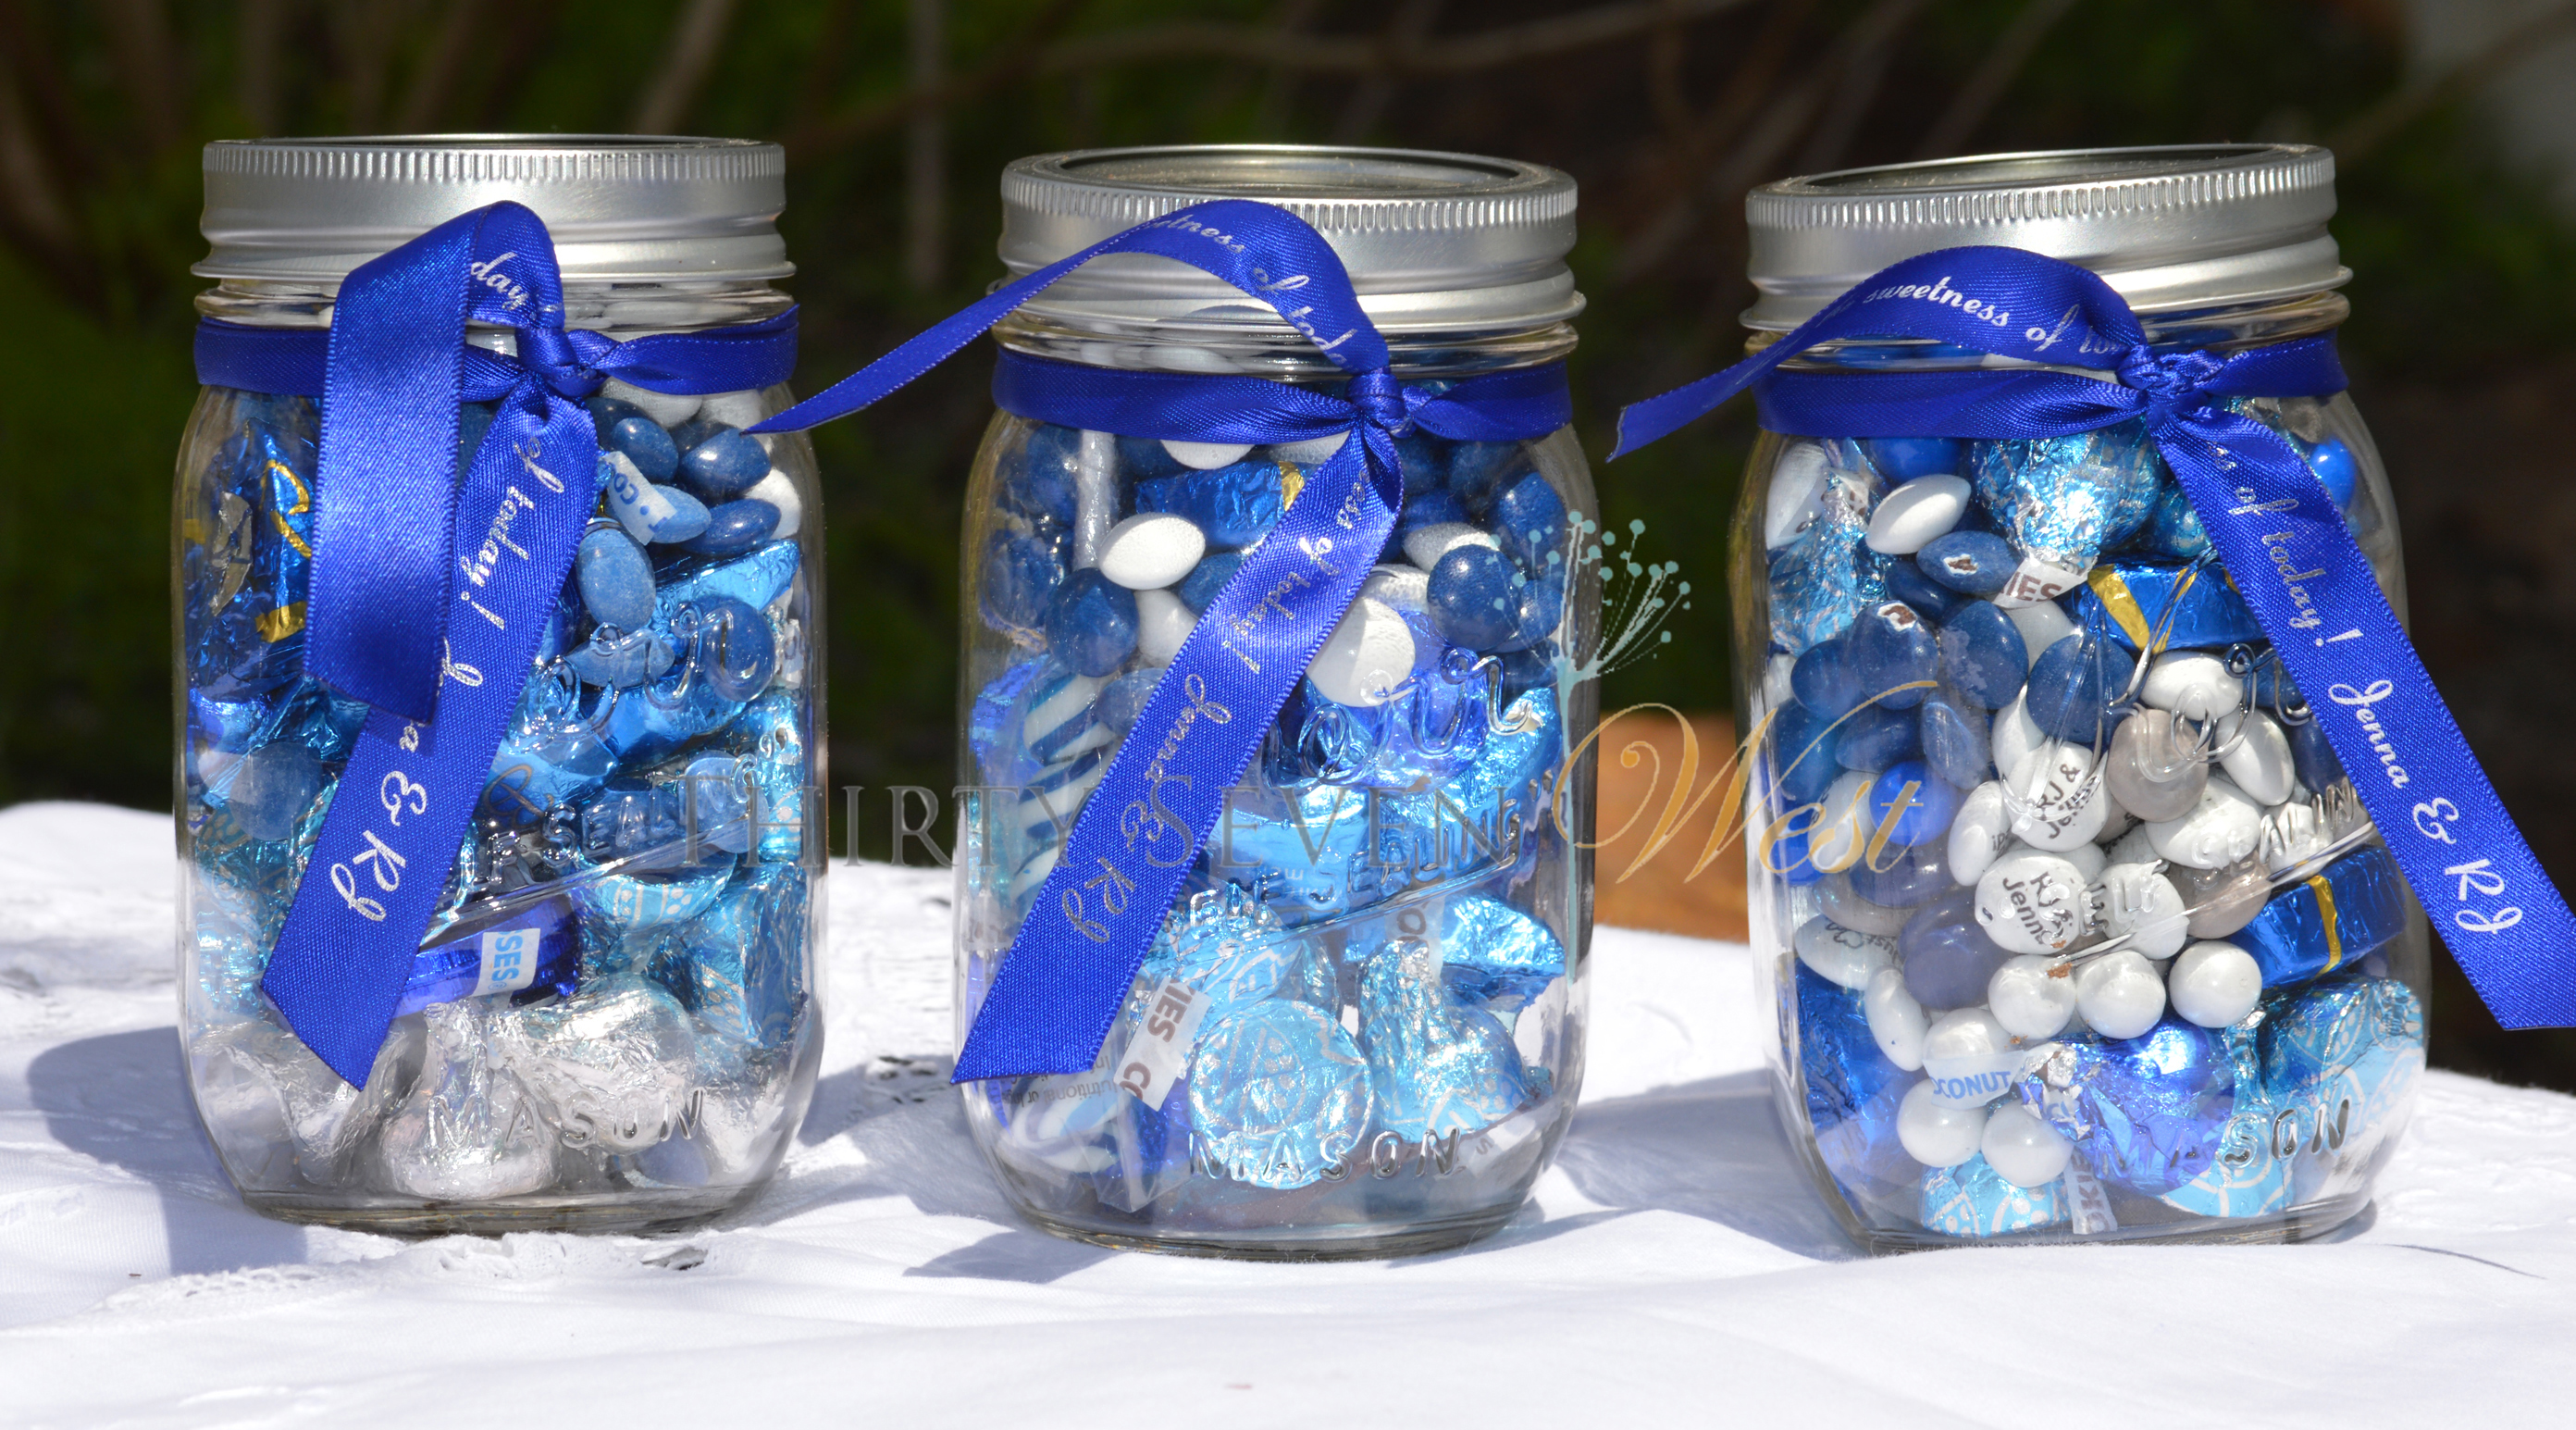 Personalized Printed Ribbon on Mason Jars for Weddings